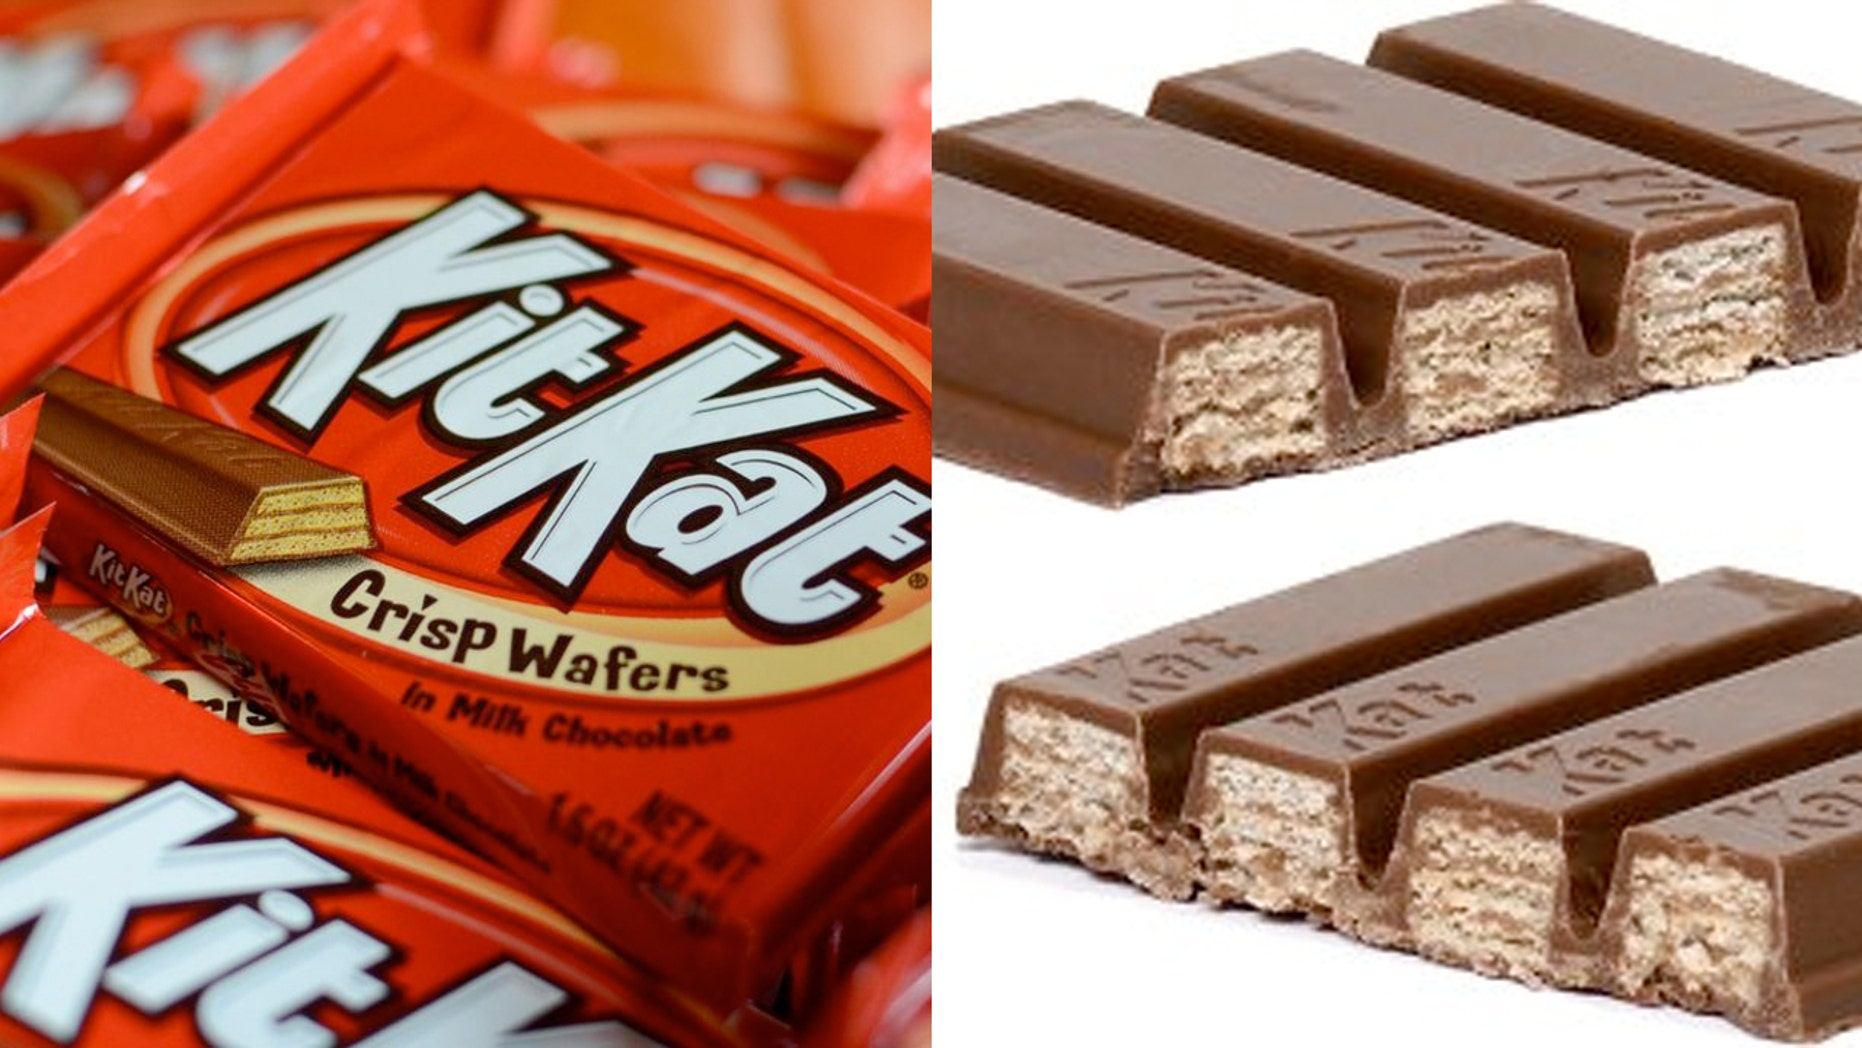 Despite Nestle's effort to trademark KitKat's design, the British High Court ruled that the shape wasn't distinctive enough to warrant one.